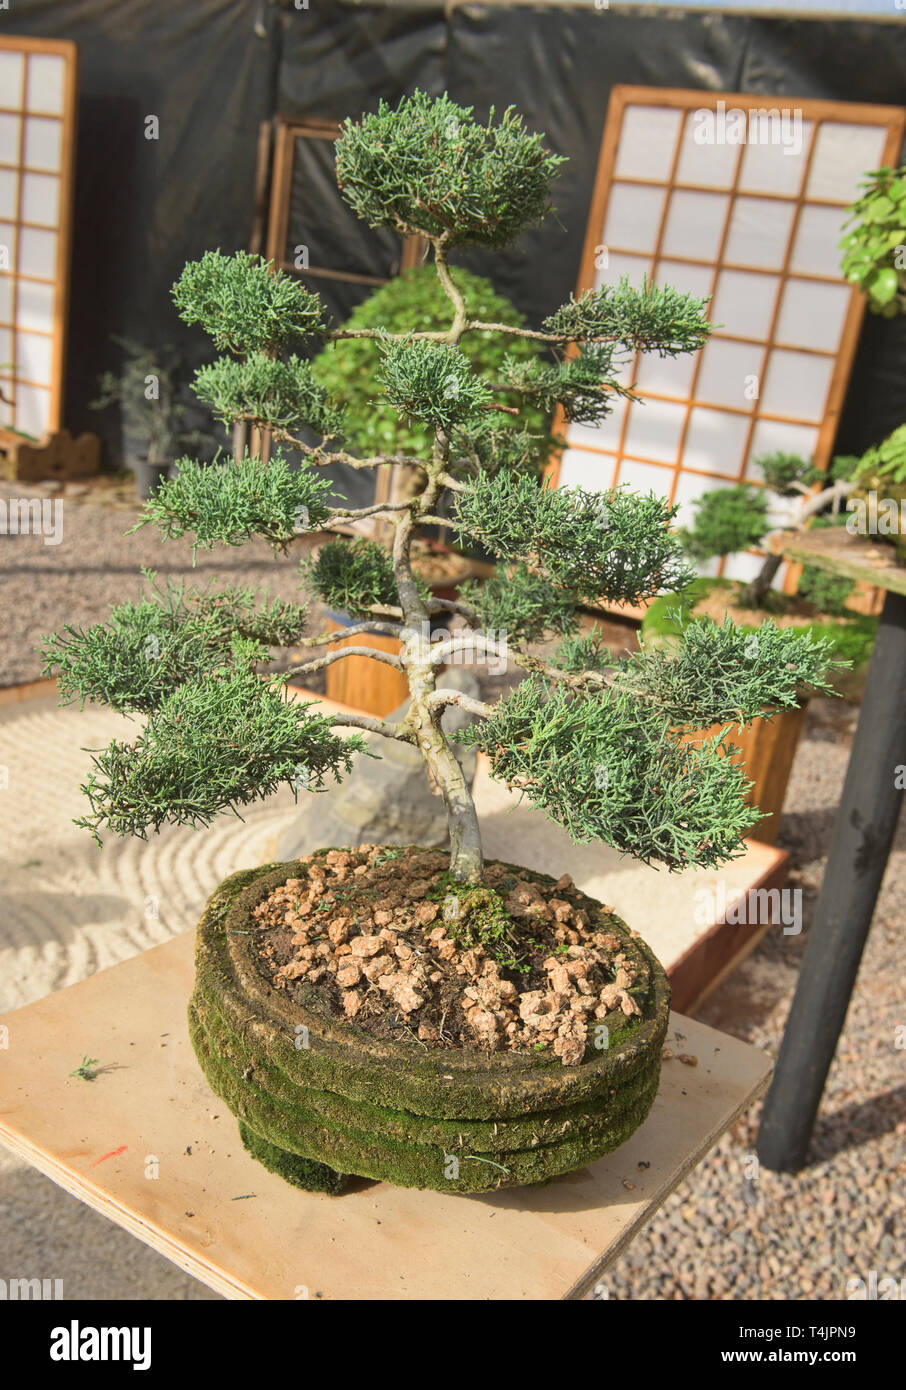 Bonsai tree in the Jardin de Corazon Japanese garden, La Serena, Chile - Stock Image